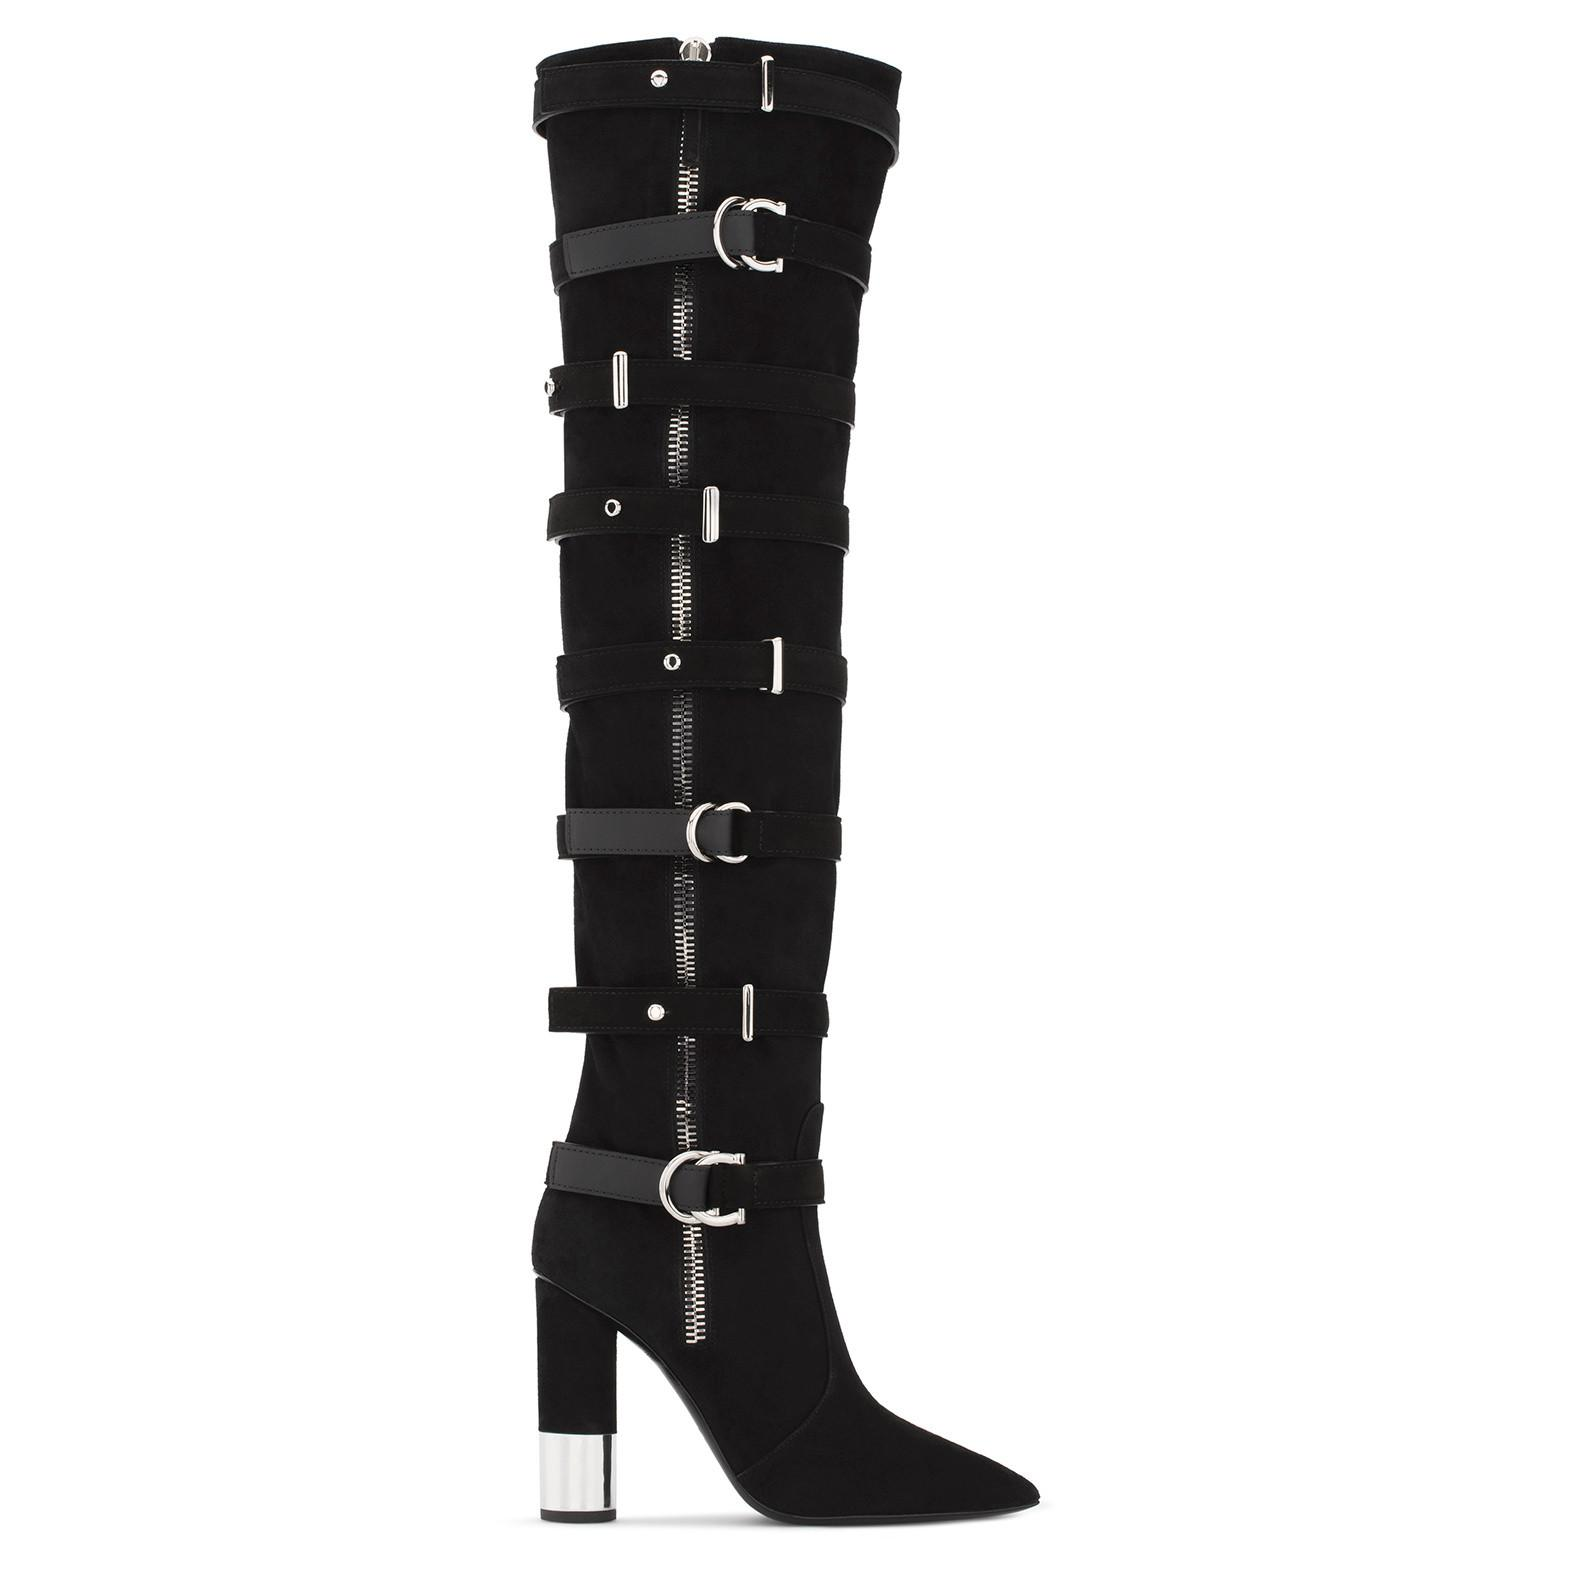 Giuseppe ZanottiSuede cuissard boot with buckles CONSTANCE PIuzE83qA